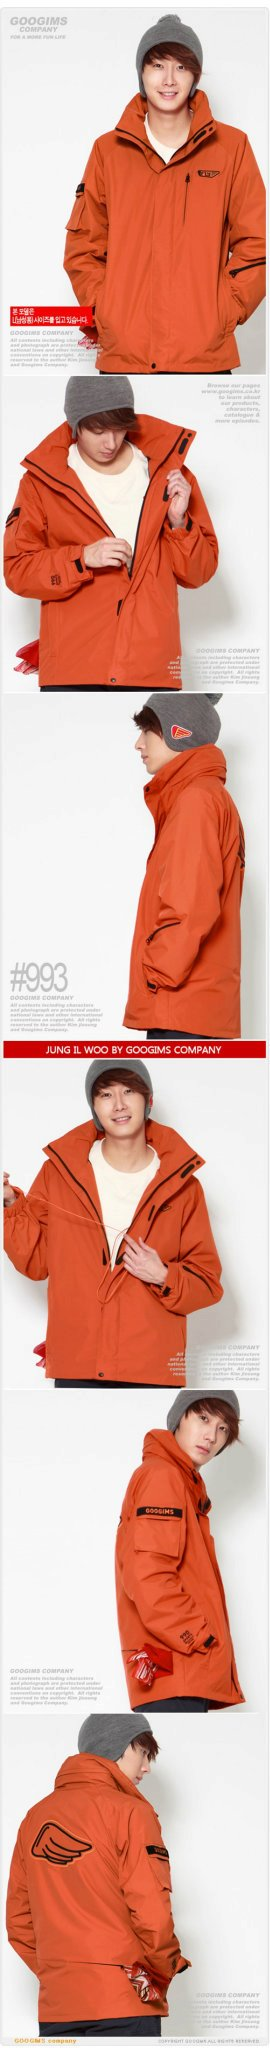 2011 10 Jung II-woo for Googims. Part 100045